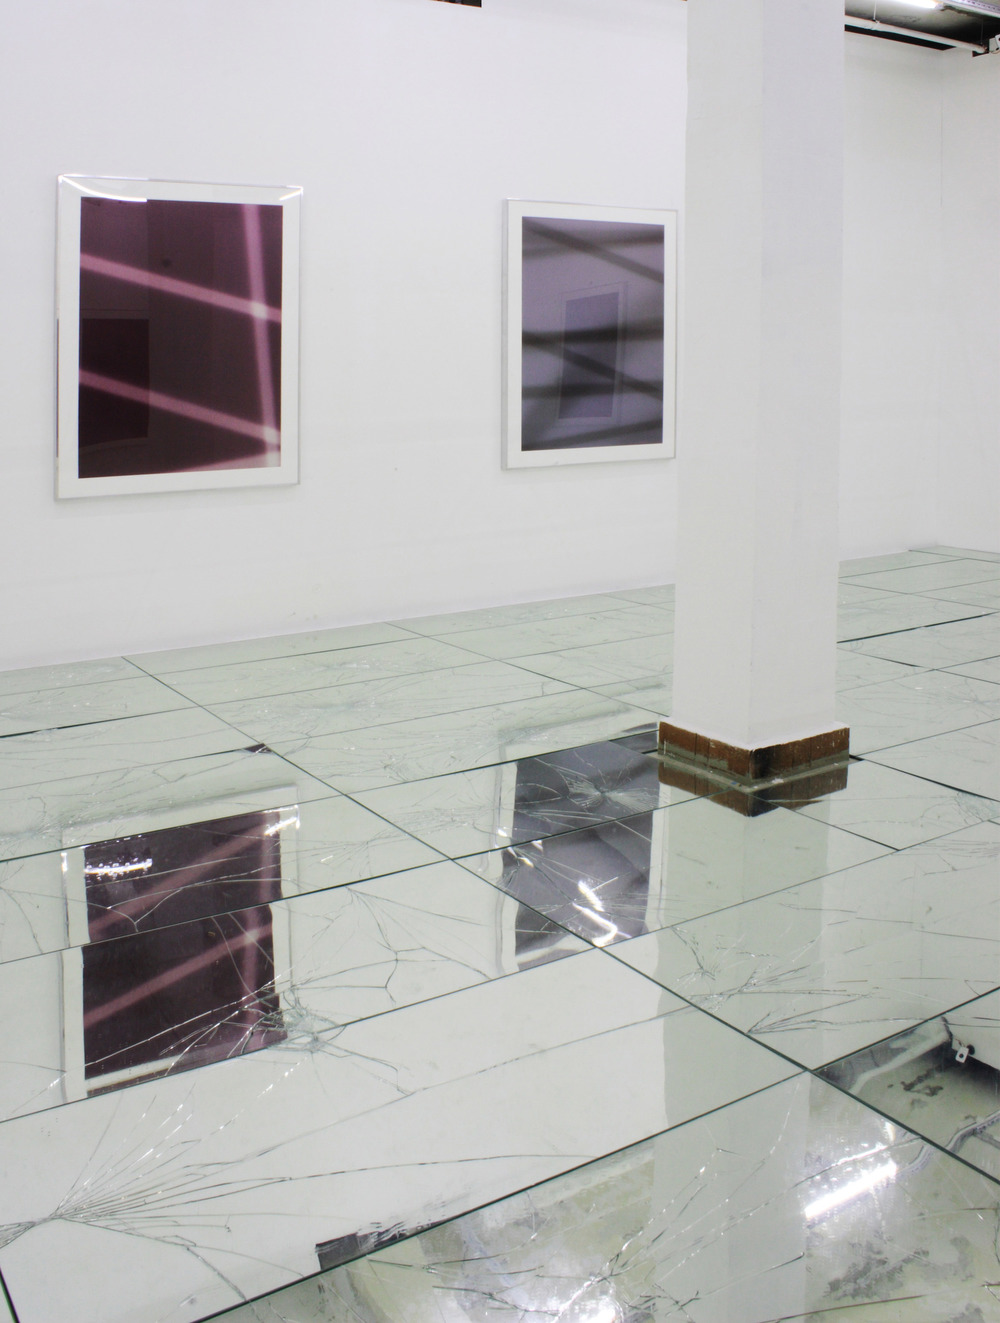 FIVE   Walead Beshty, Matthew Brannon, Wade Guyton, Sterling Ruby, and Kelley Walker  Baibakov Projects  Moscow  Russia  2009